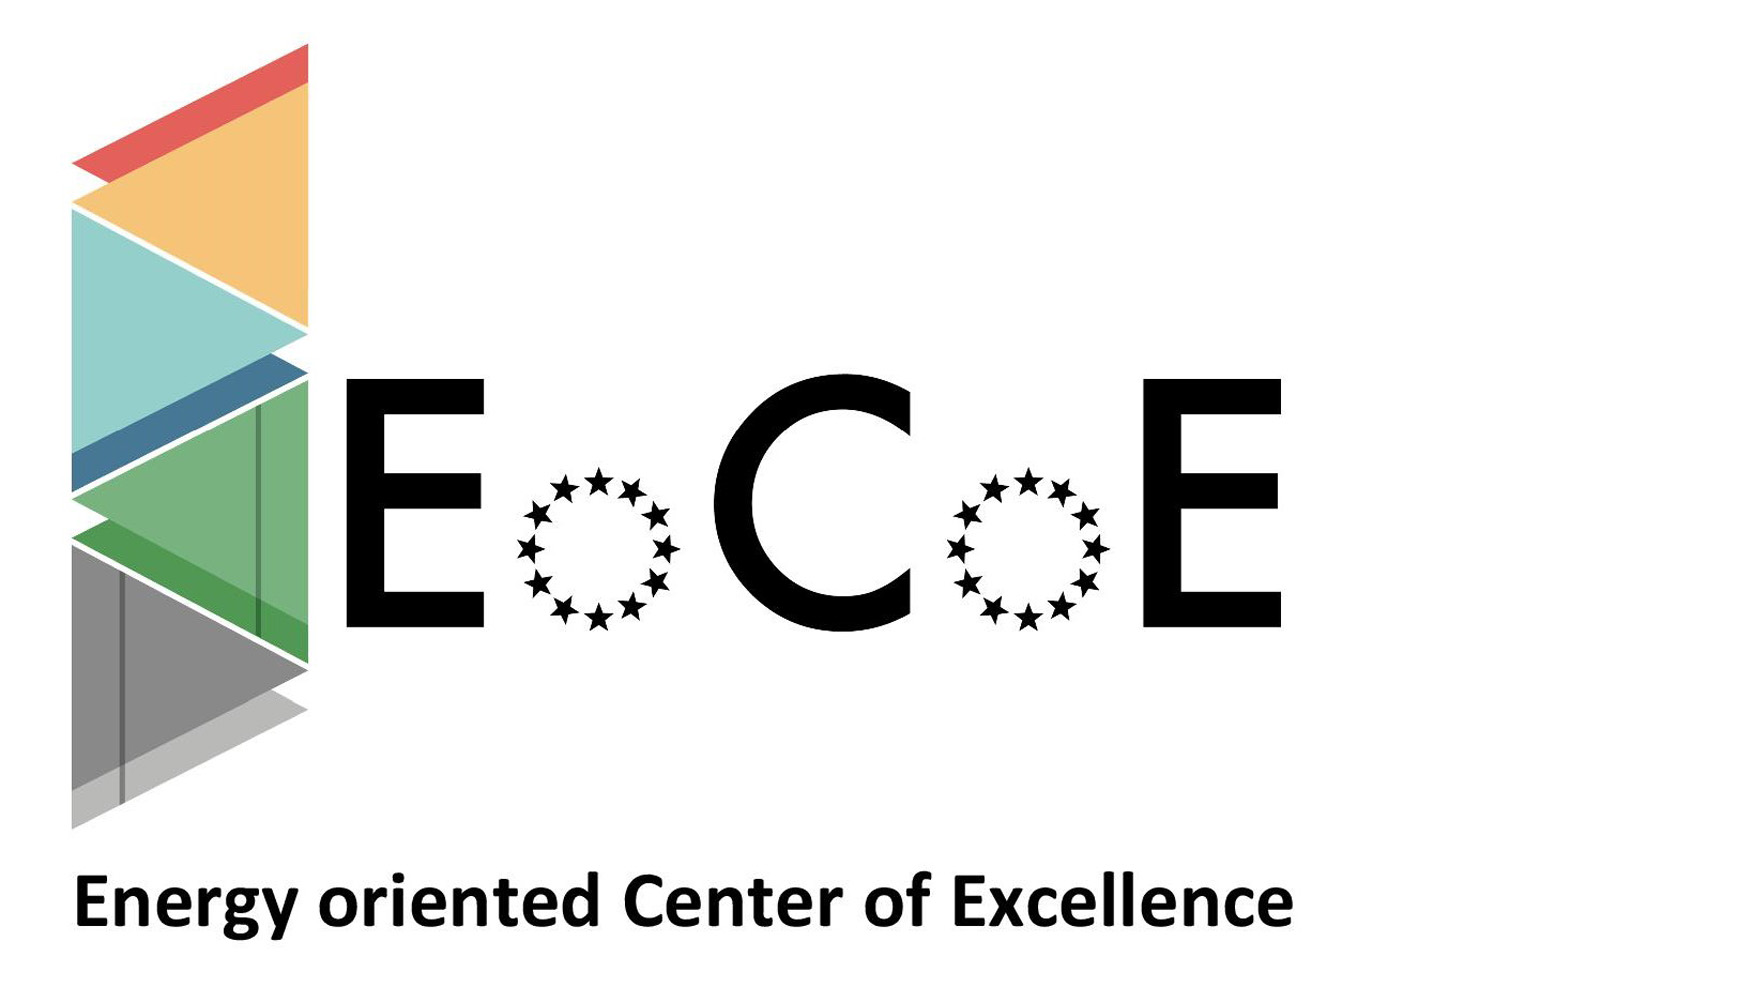 EoCoE, toward exascale for energy